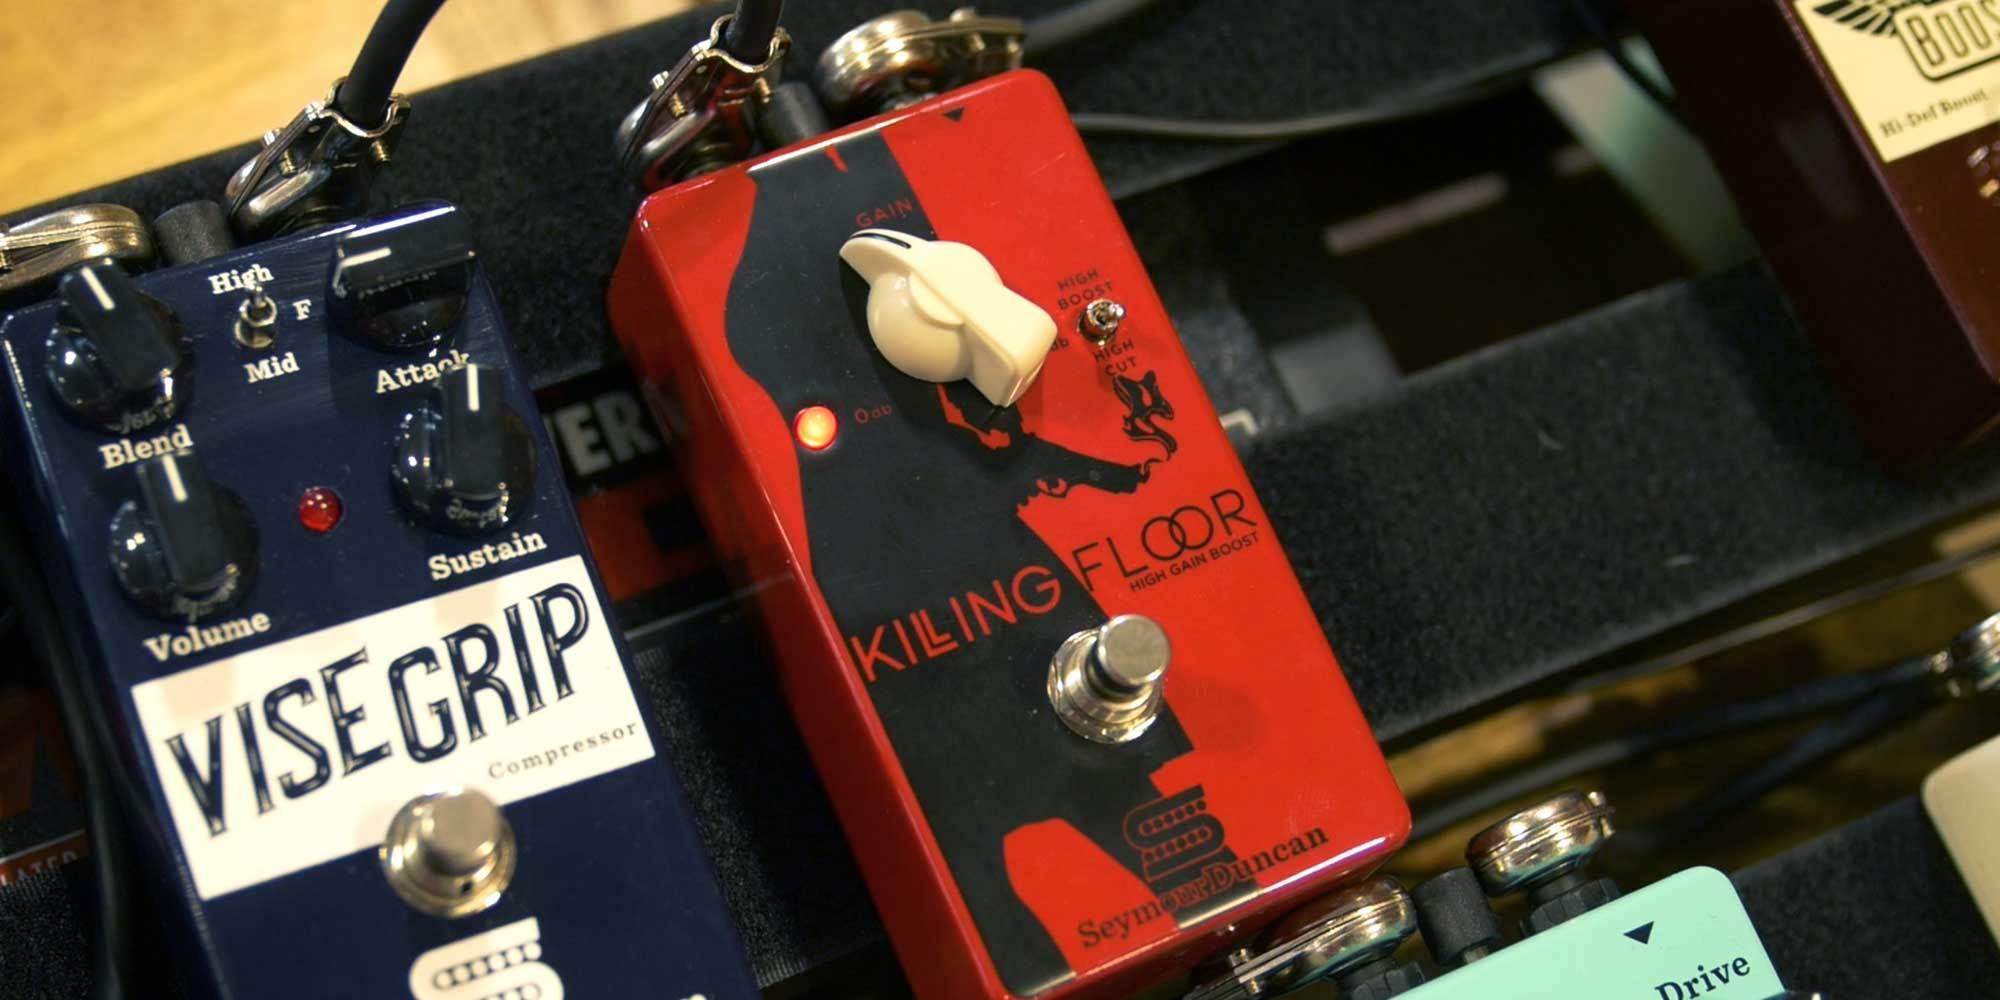 Seymour Duncan Paladium, Forza, and Killing Floor Pedals